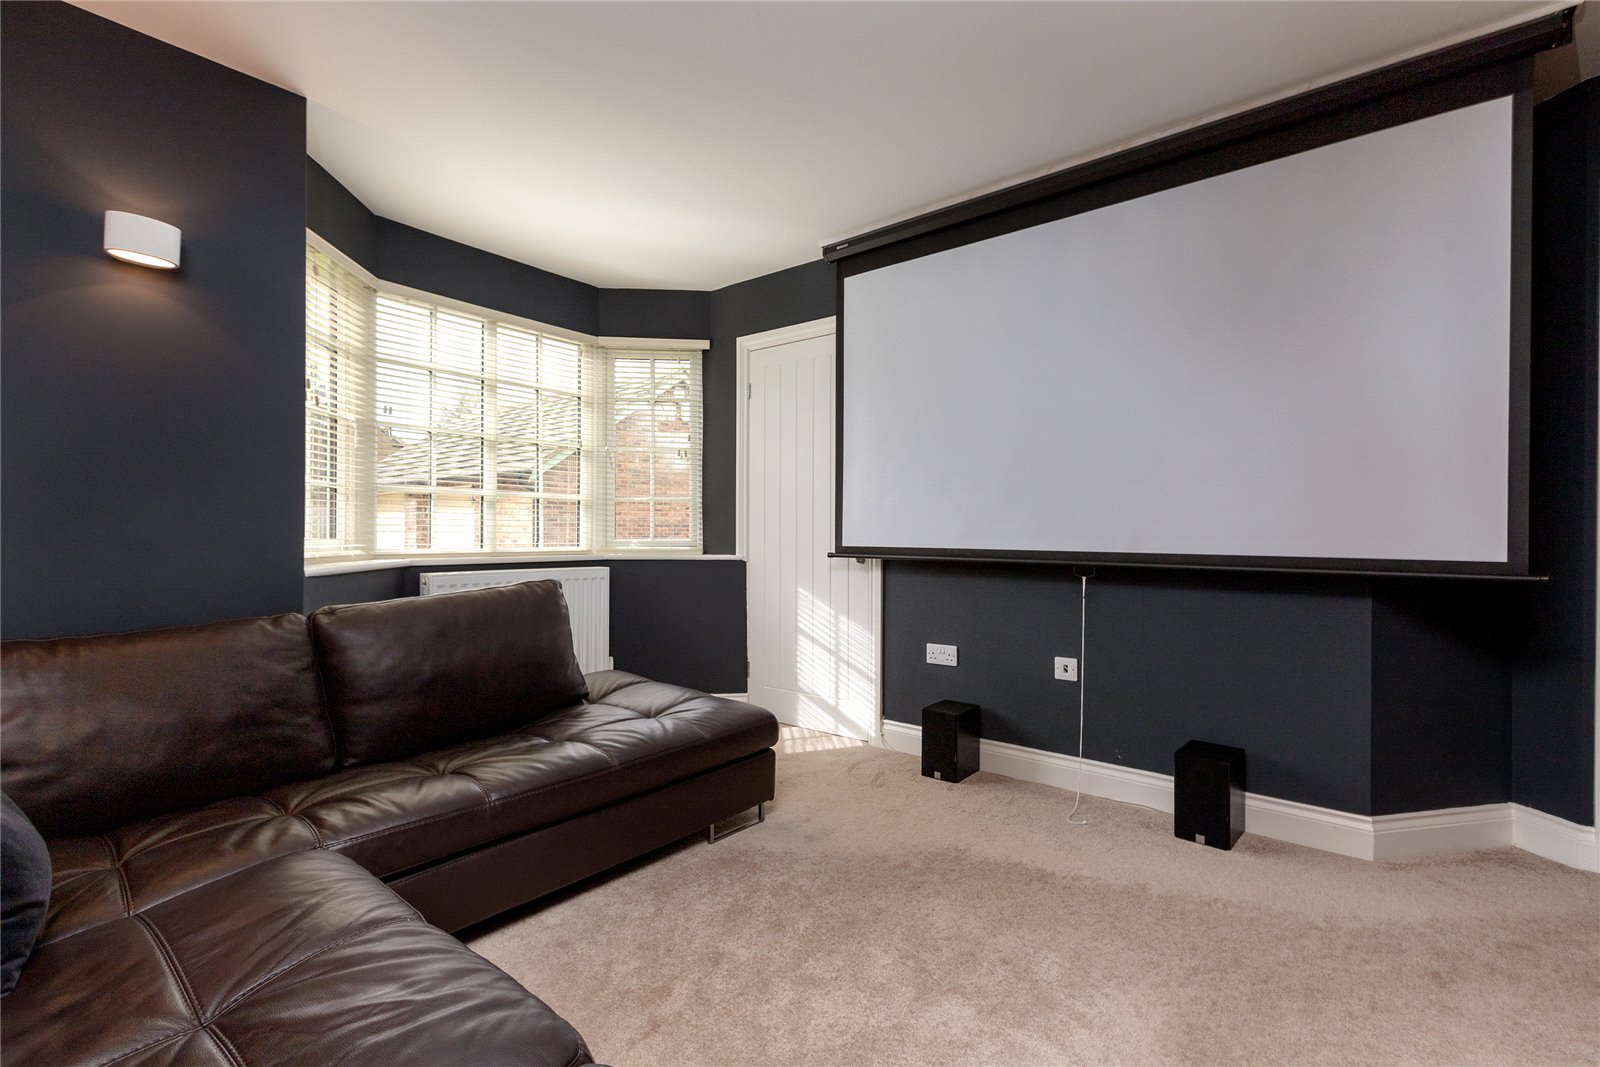 6 bed house for sale in Ladgate Lane, Middlesbrough  - Property Image 10